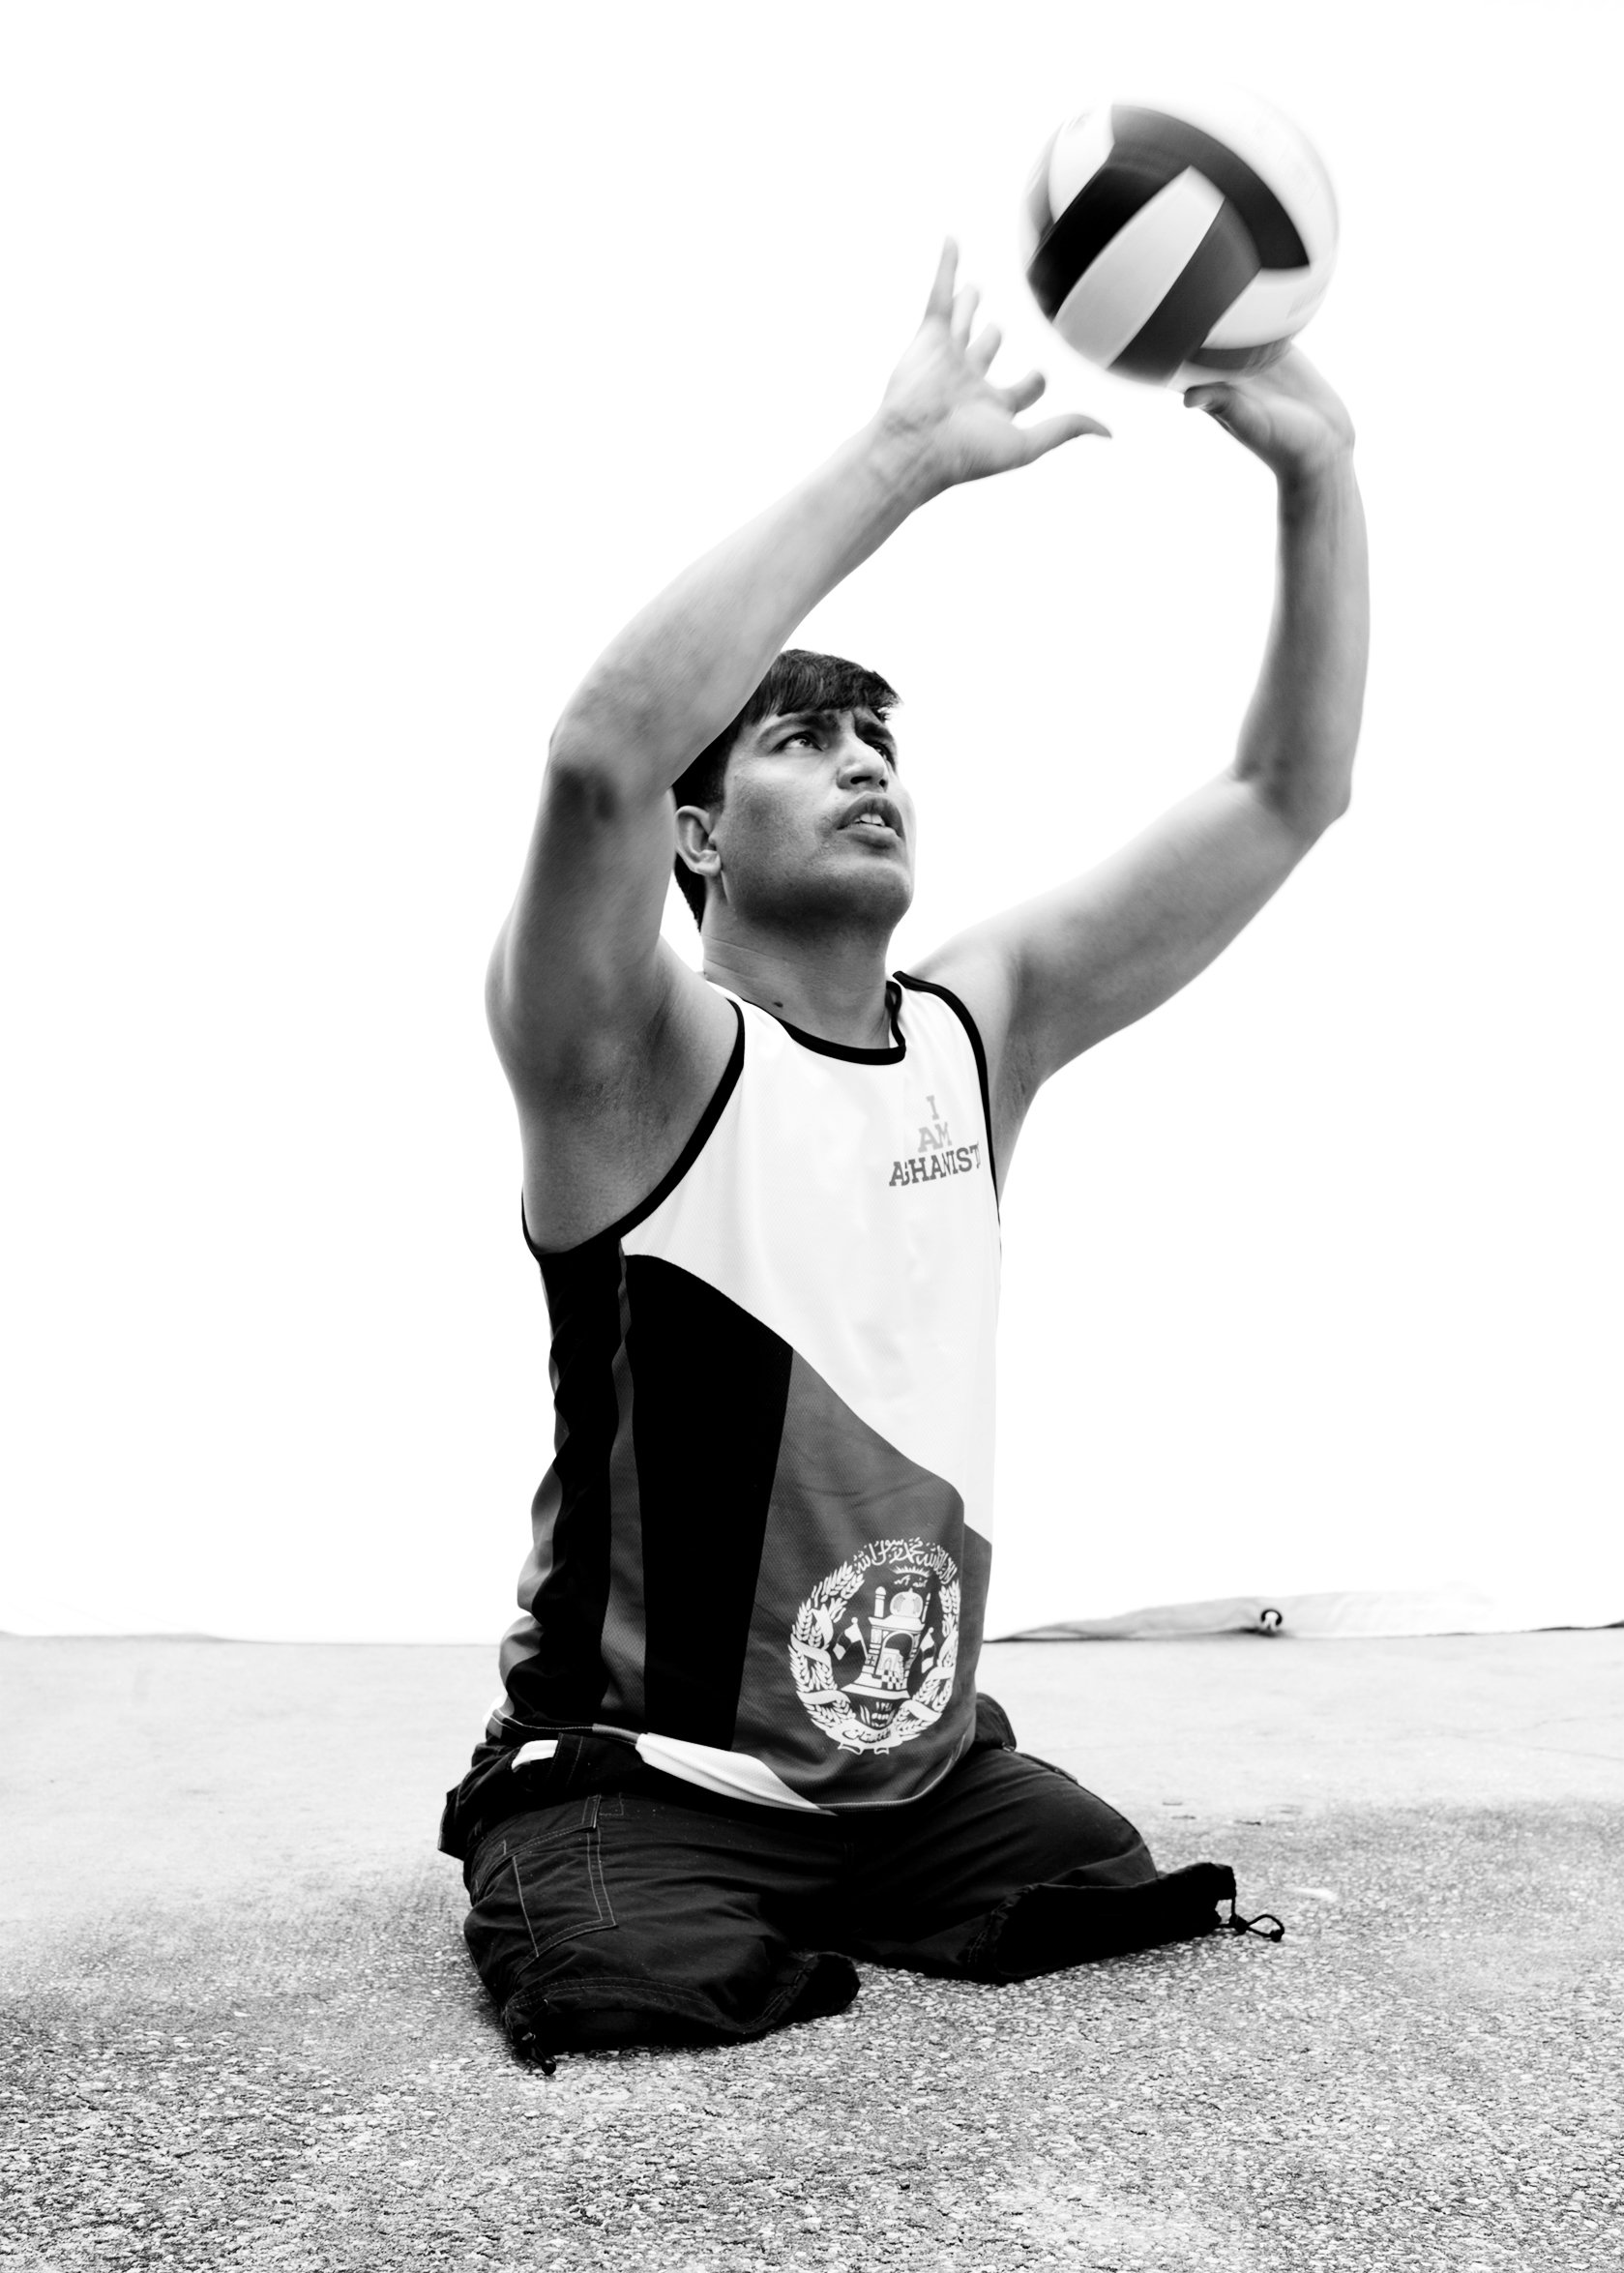 Nader Halimi, Afghanistan, competed in volleyball and rowing